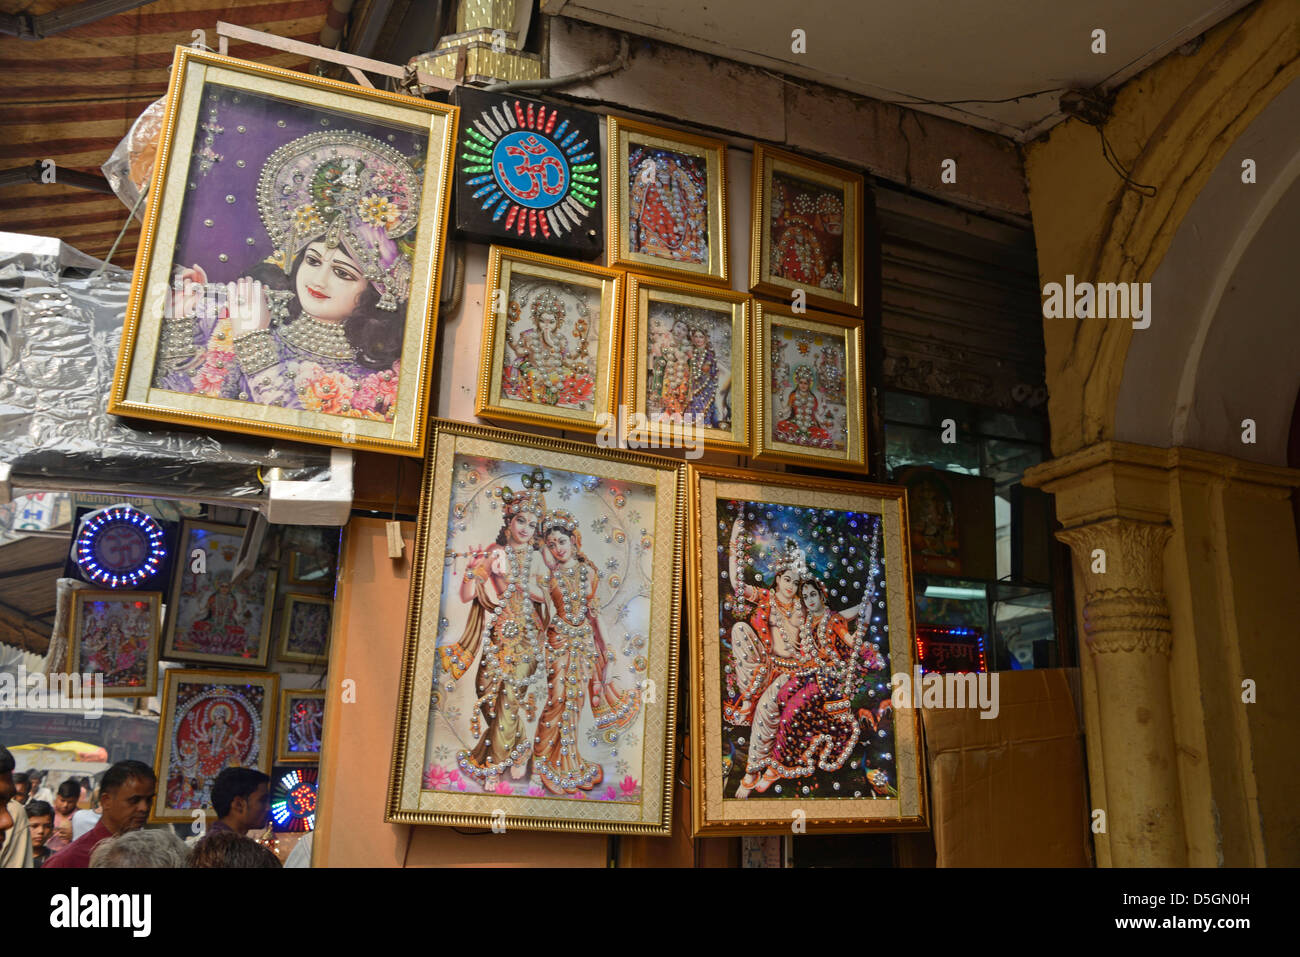 A Hindu gift shop in Chandni Chowk, Old Delhi, India Stock Photo ...